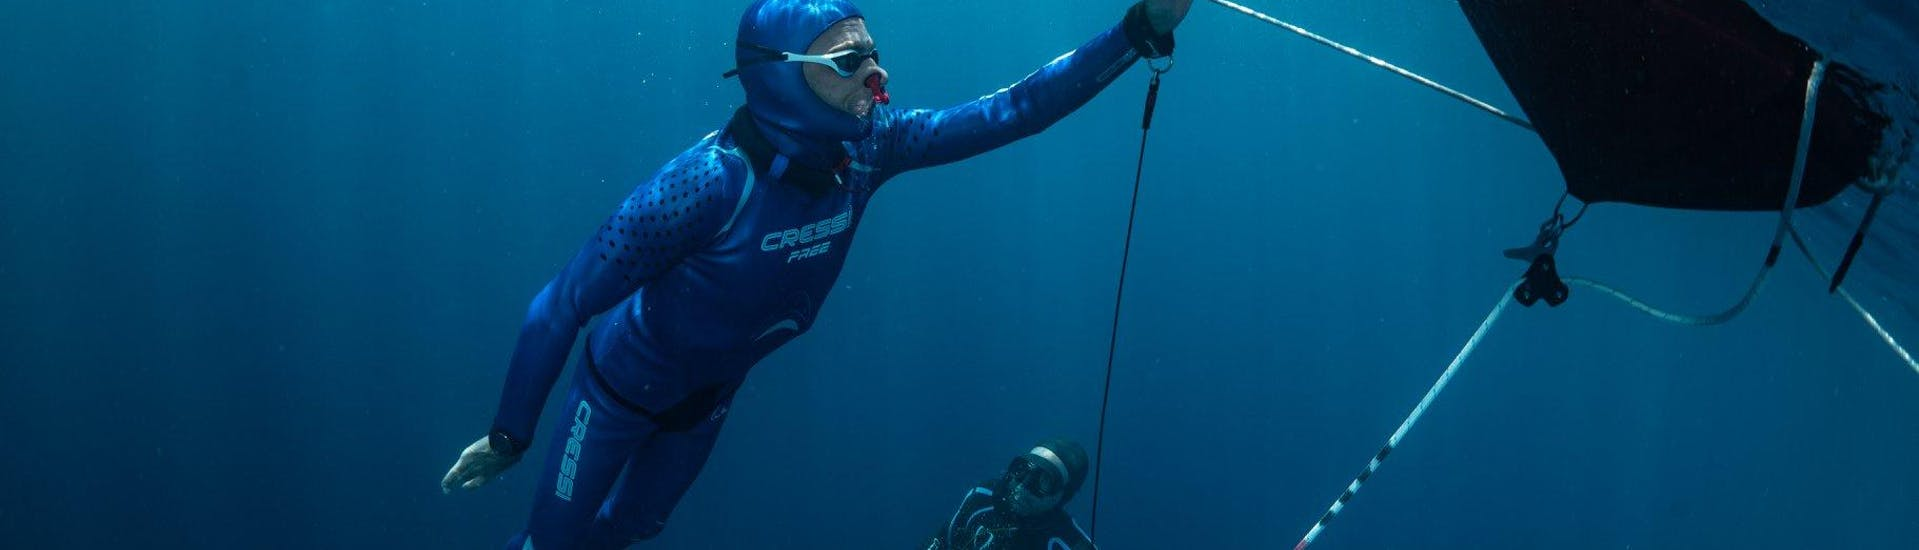 free-diving-course-in-nice-for-beginners-chango-diving-hero.jpeg